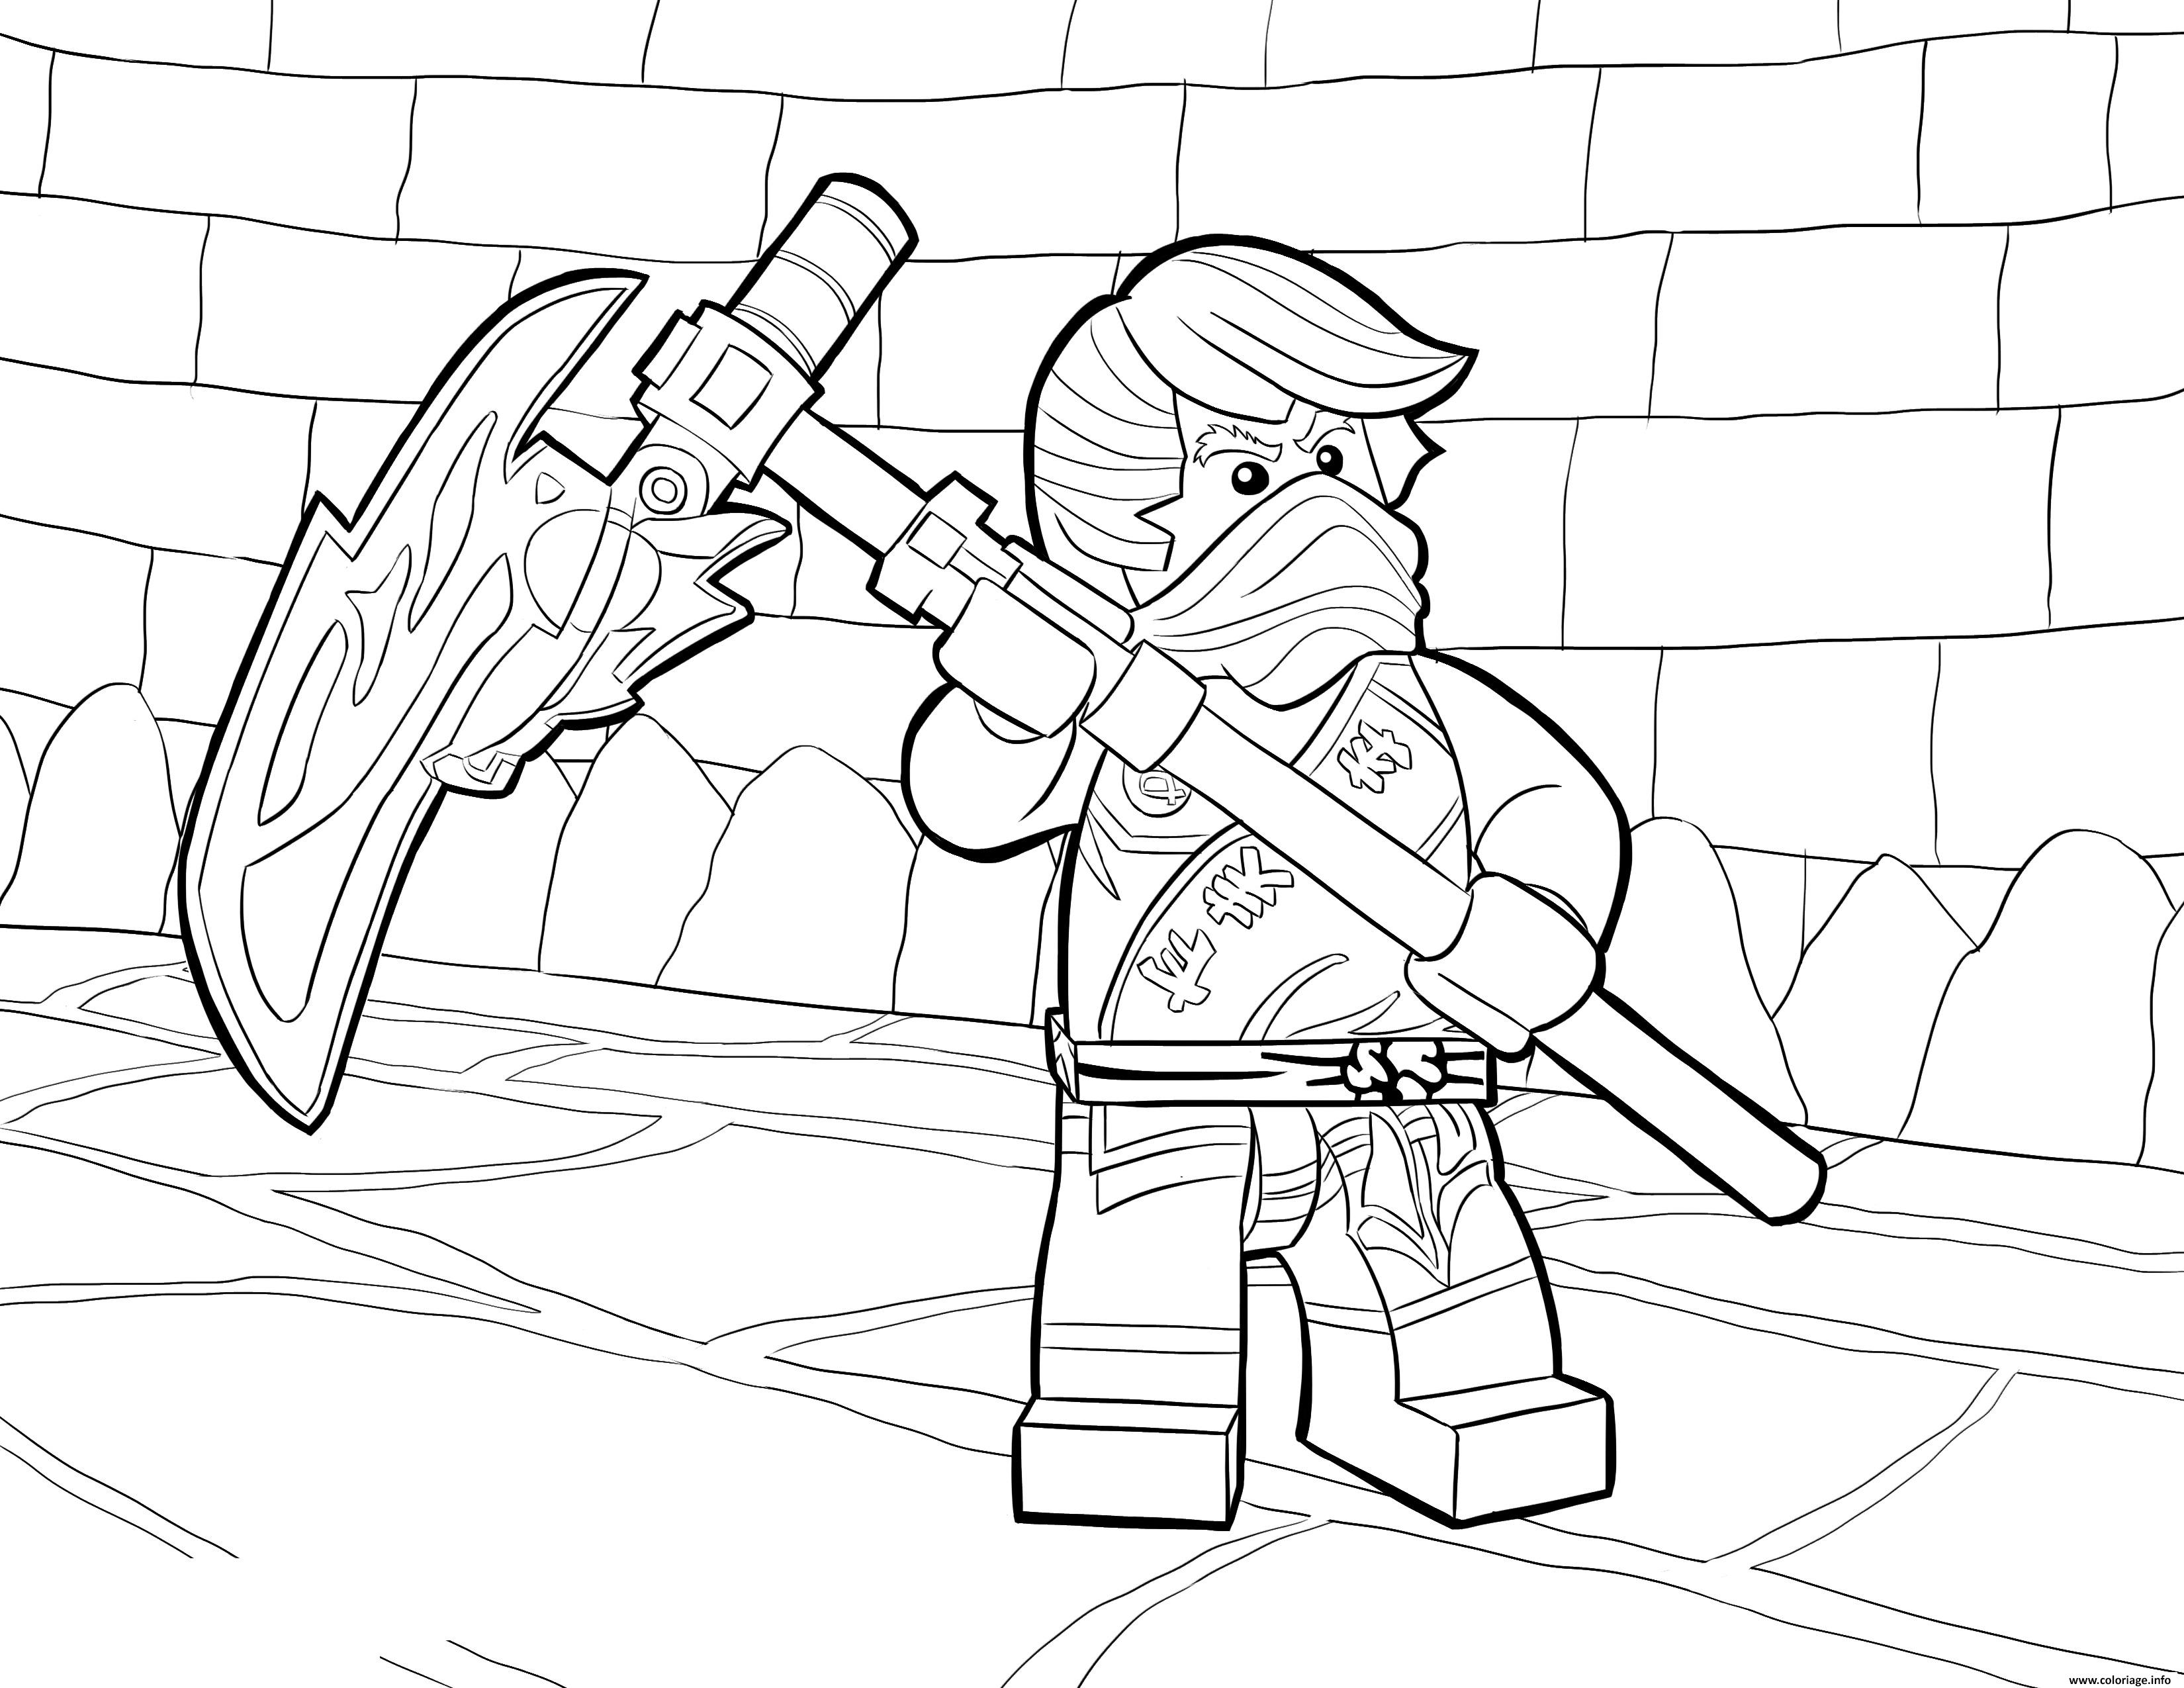 Dessin LEGO Ninjago Cole Tournament of Elements Coloriage Gratuit à Imprimer